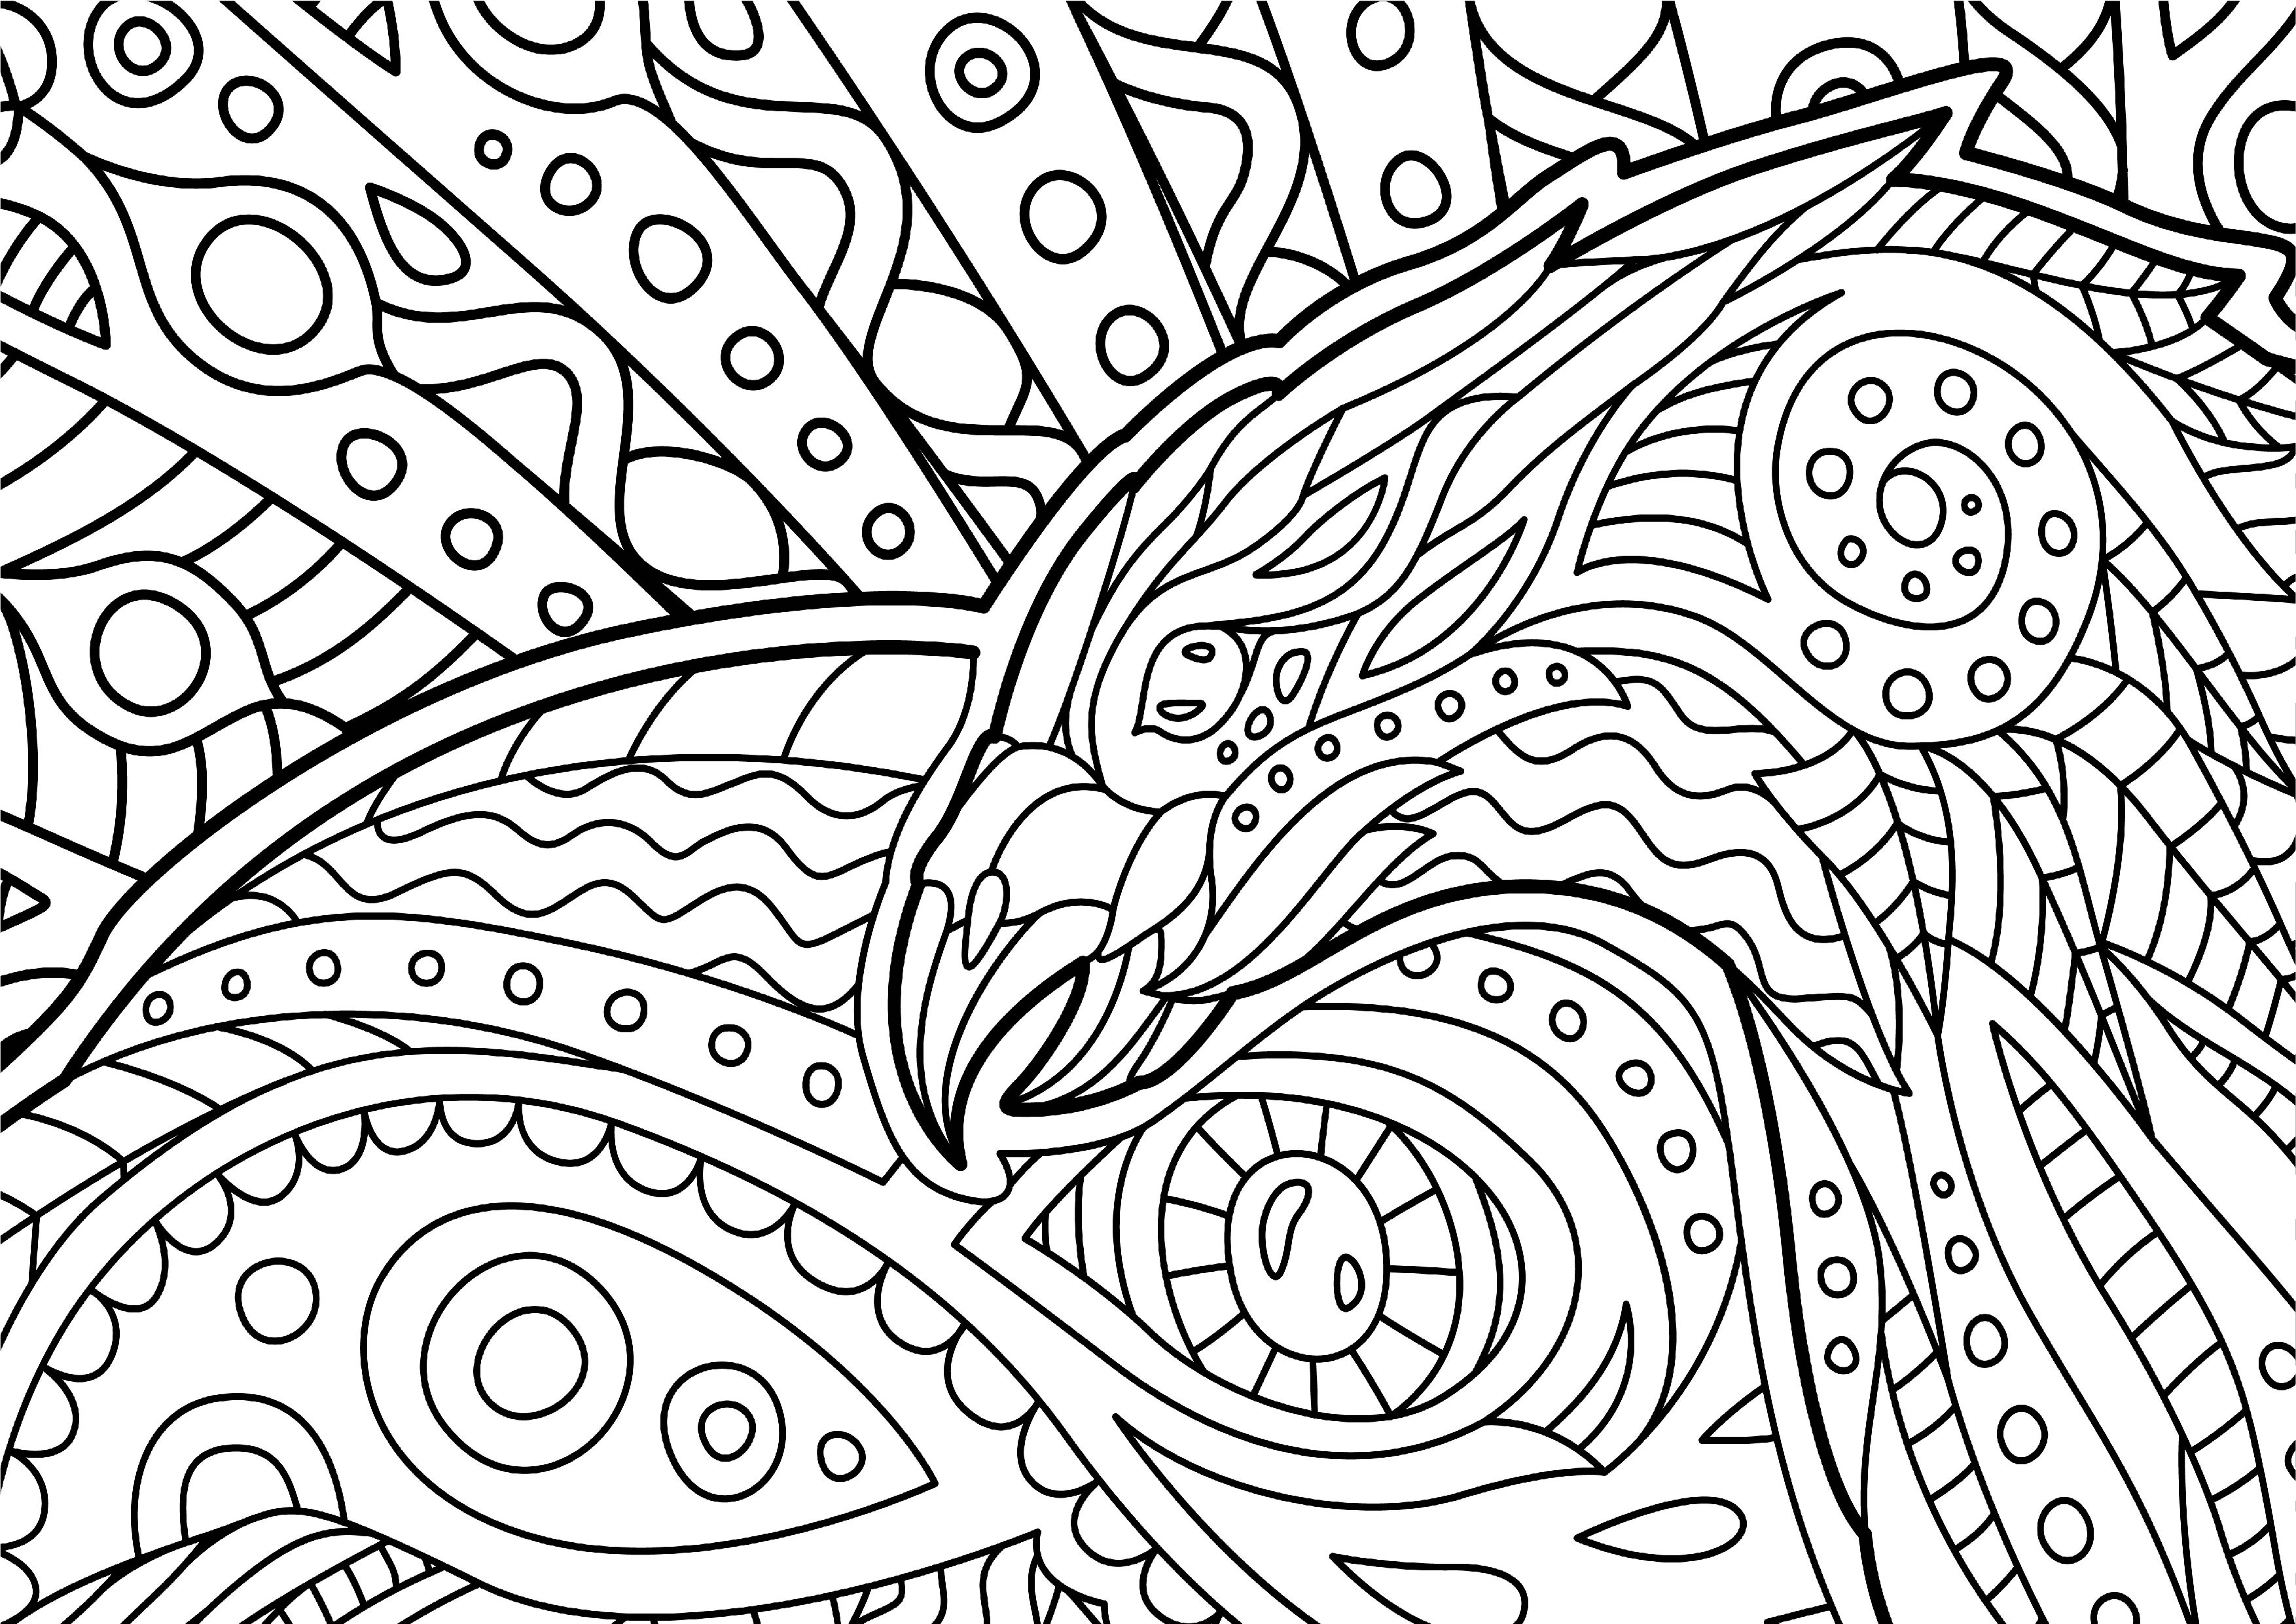 We're In This Together Coloring Page